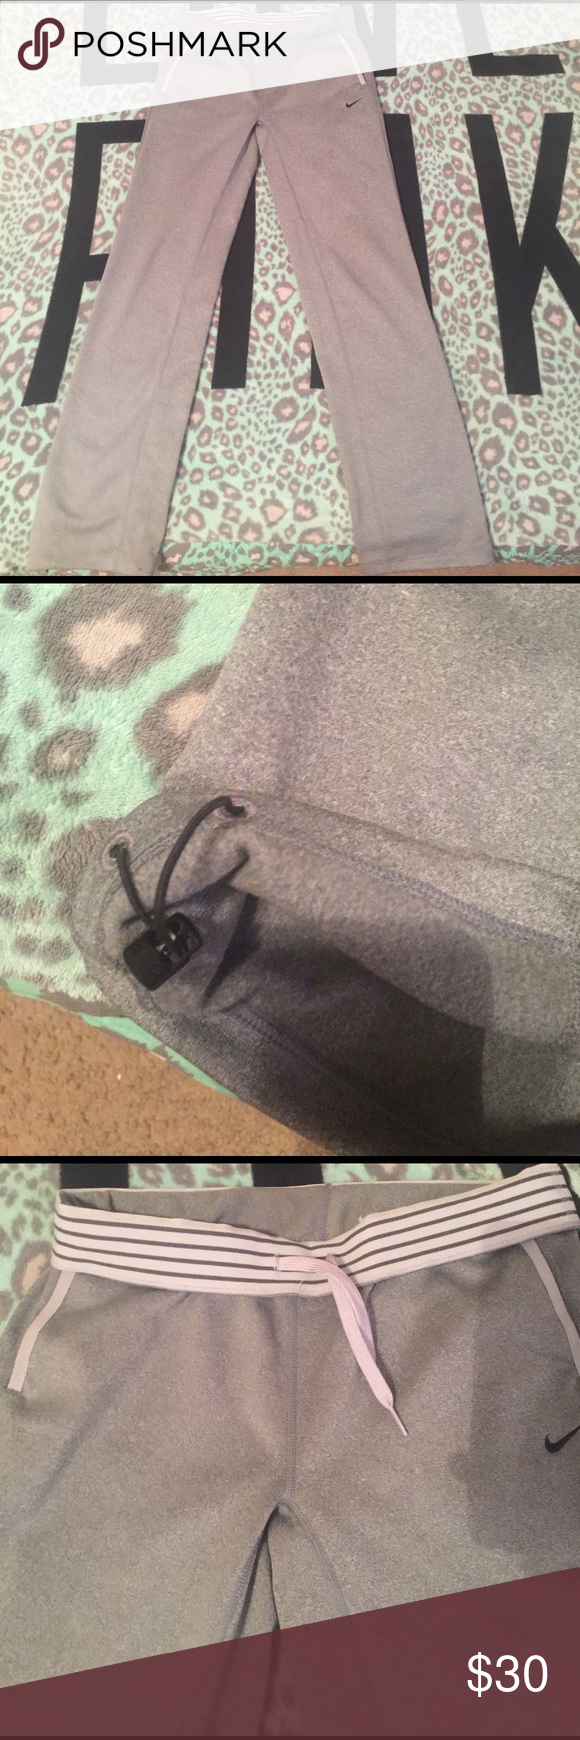 Nike dri-fit sweatpants Very cute, comfy sweats worn once so price is already dropped by 10 bucks of what I paid for them! One flaw is the very small look like marker spot on the bottom of pants shown in pic....ships asap Nike Other